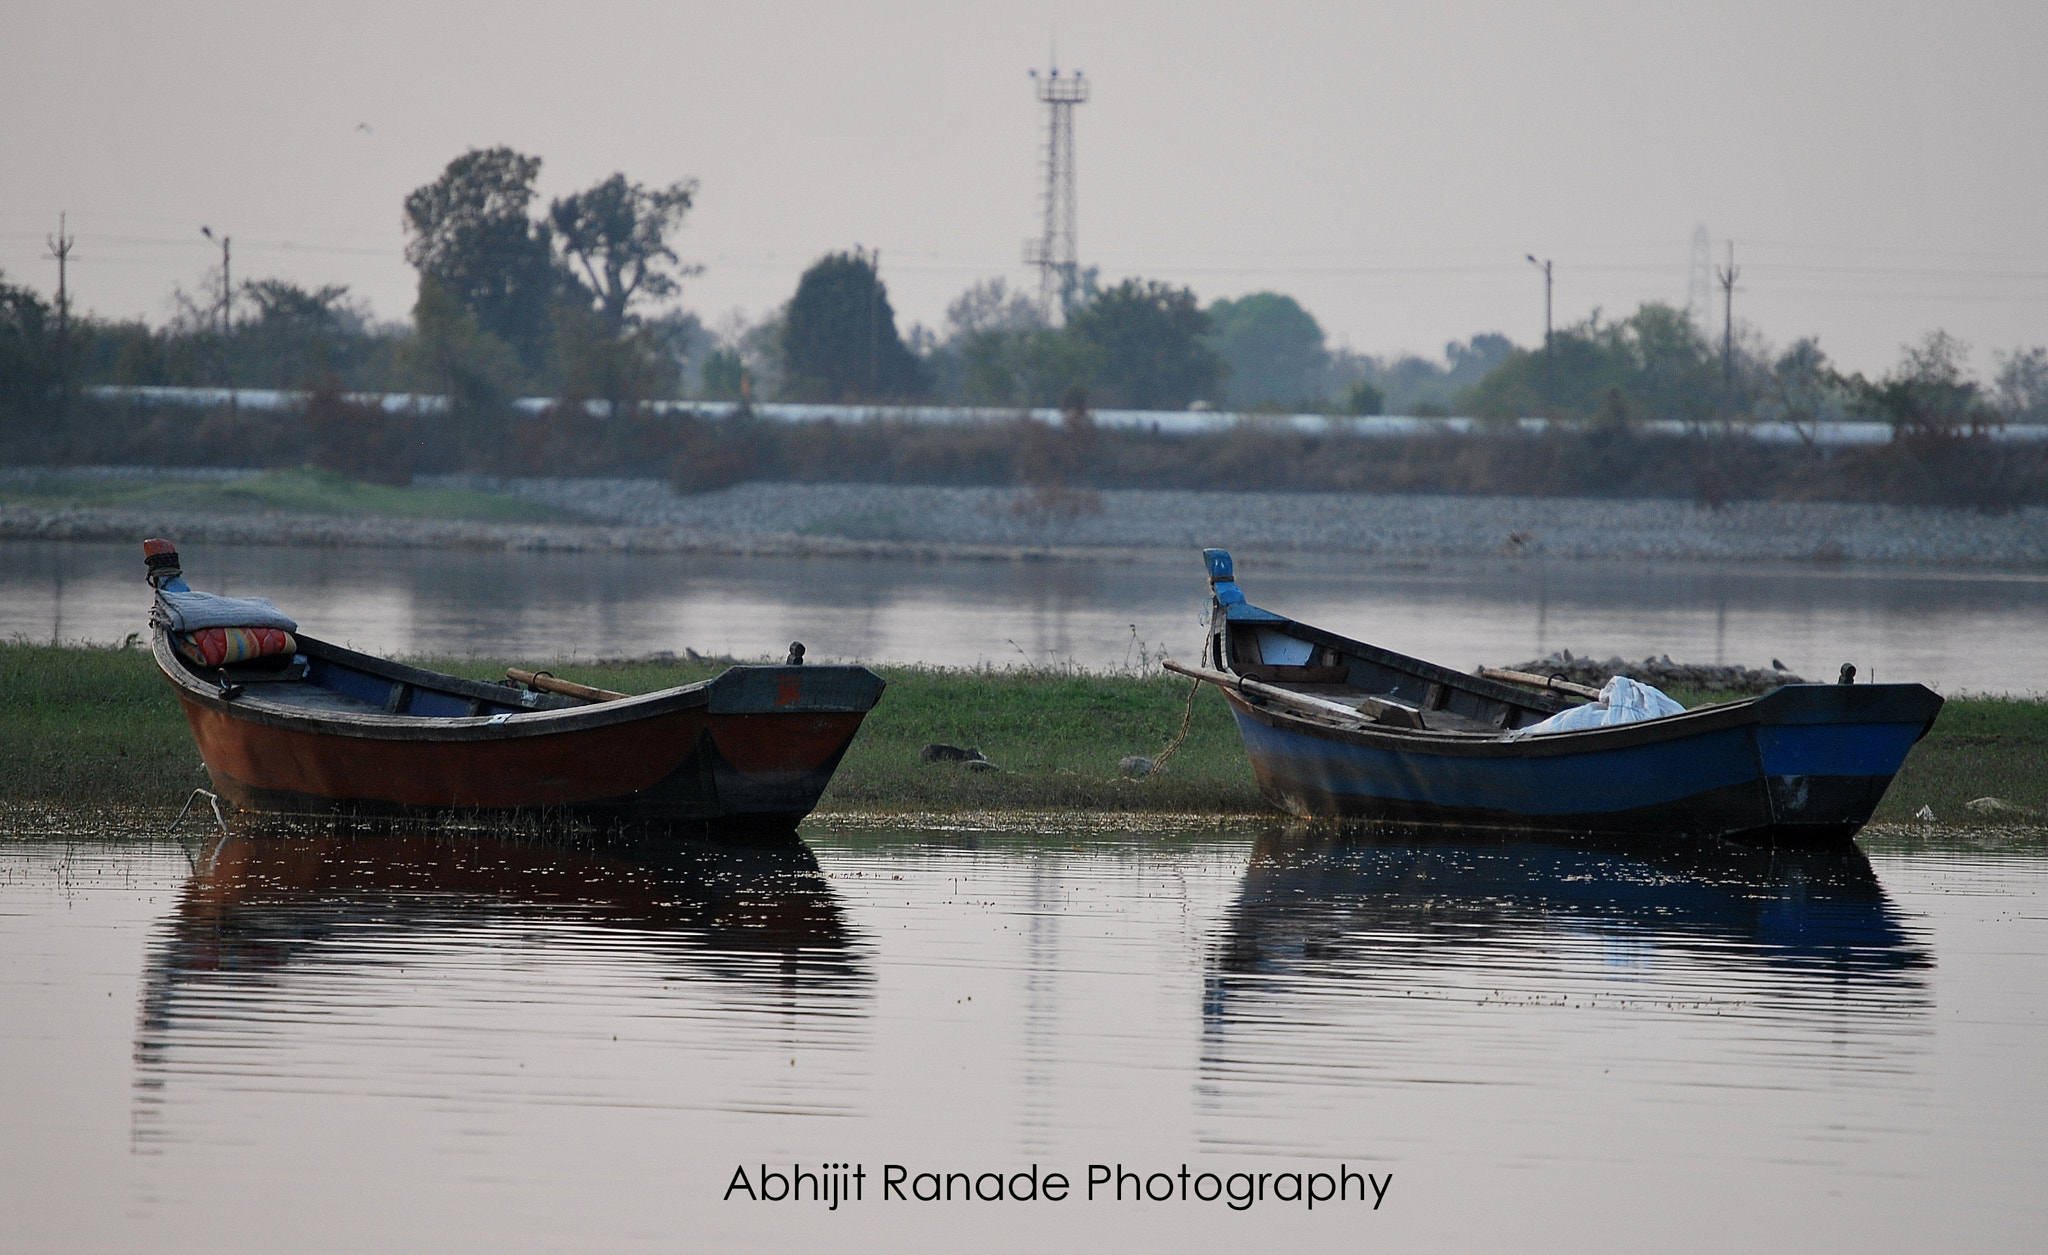 Photograph Serenity by Abhijit Ranade on 500px